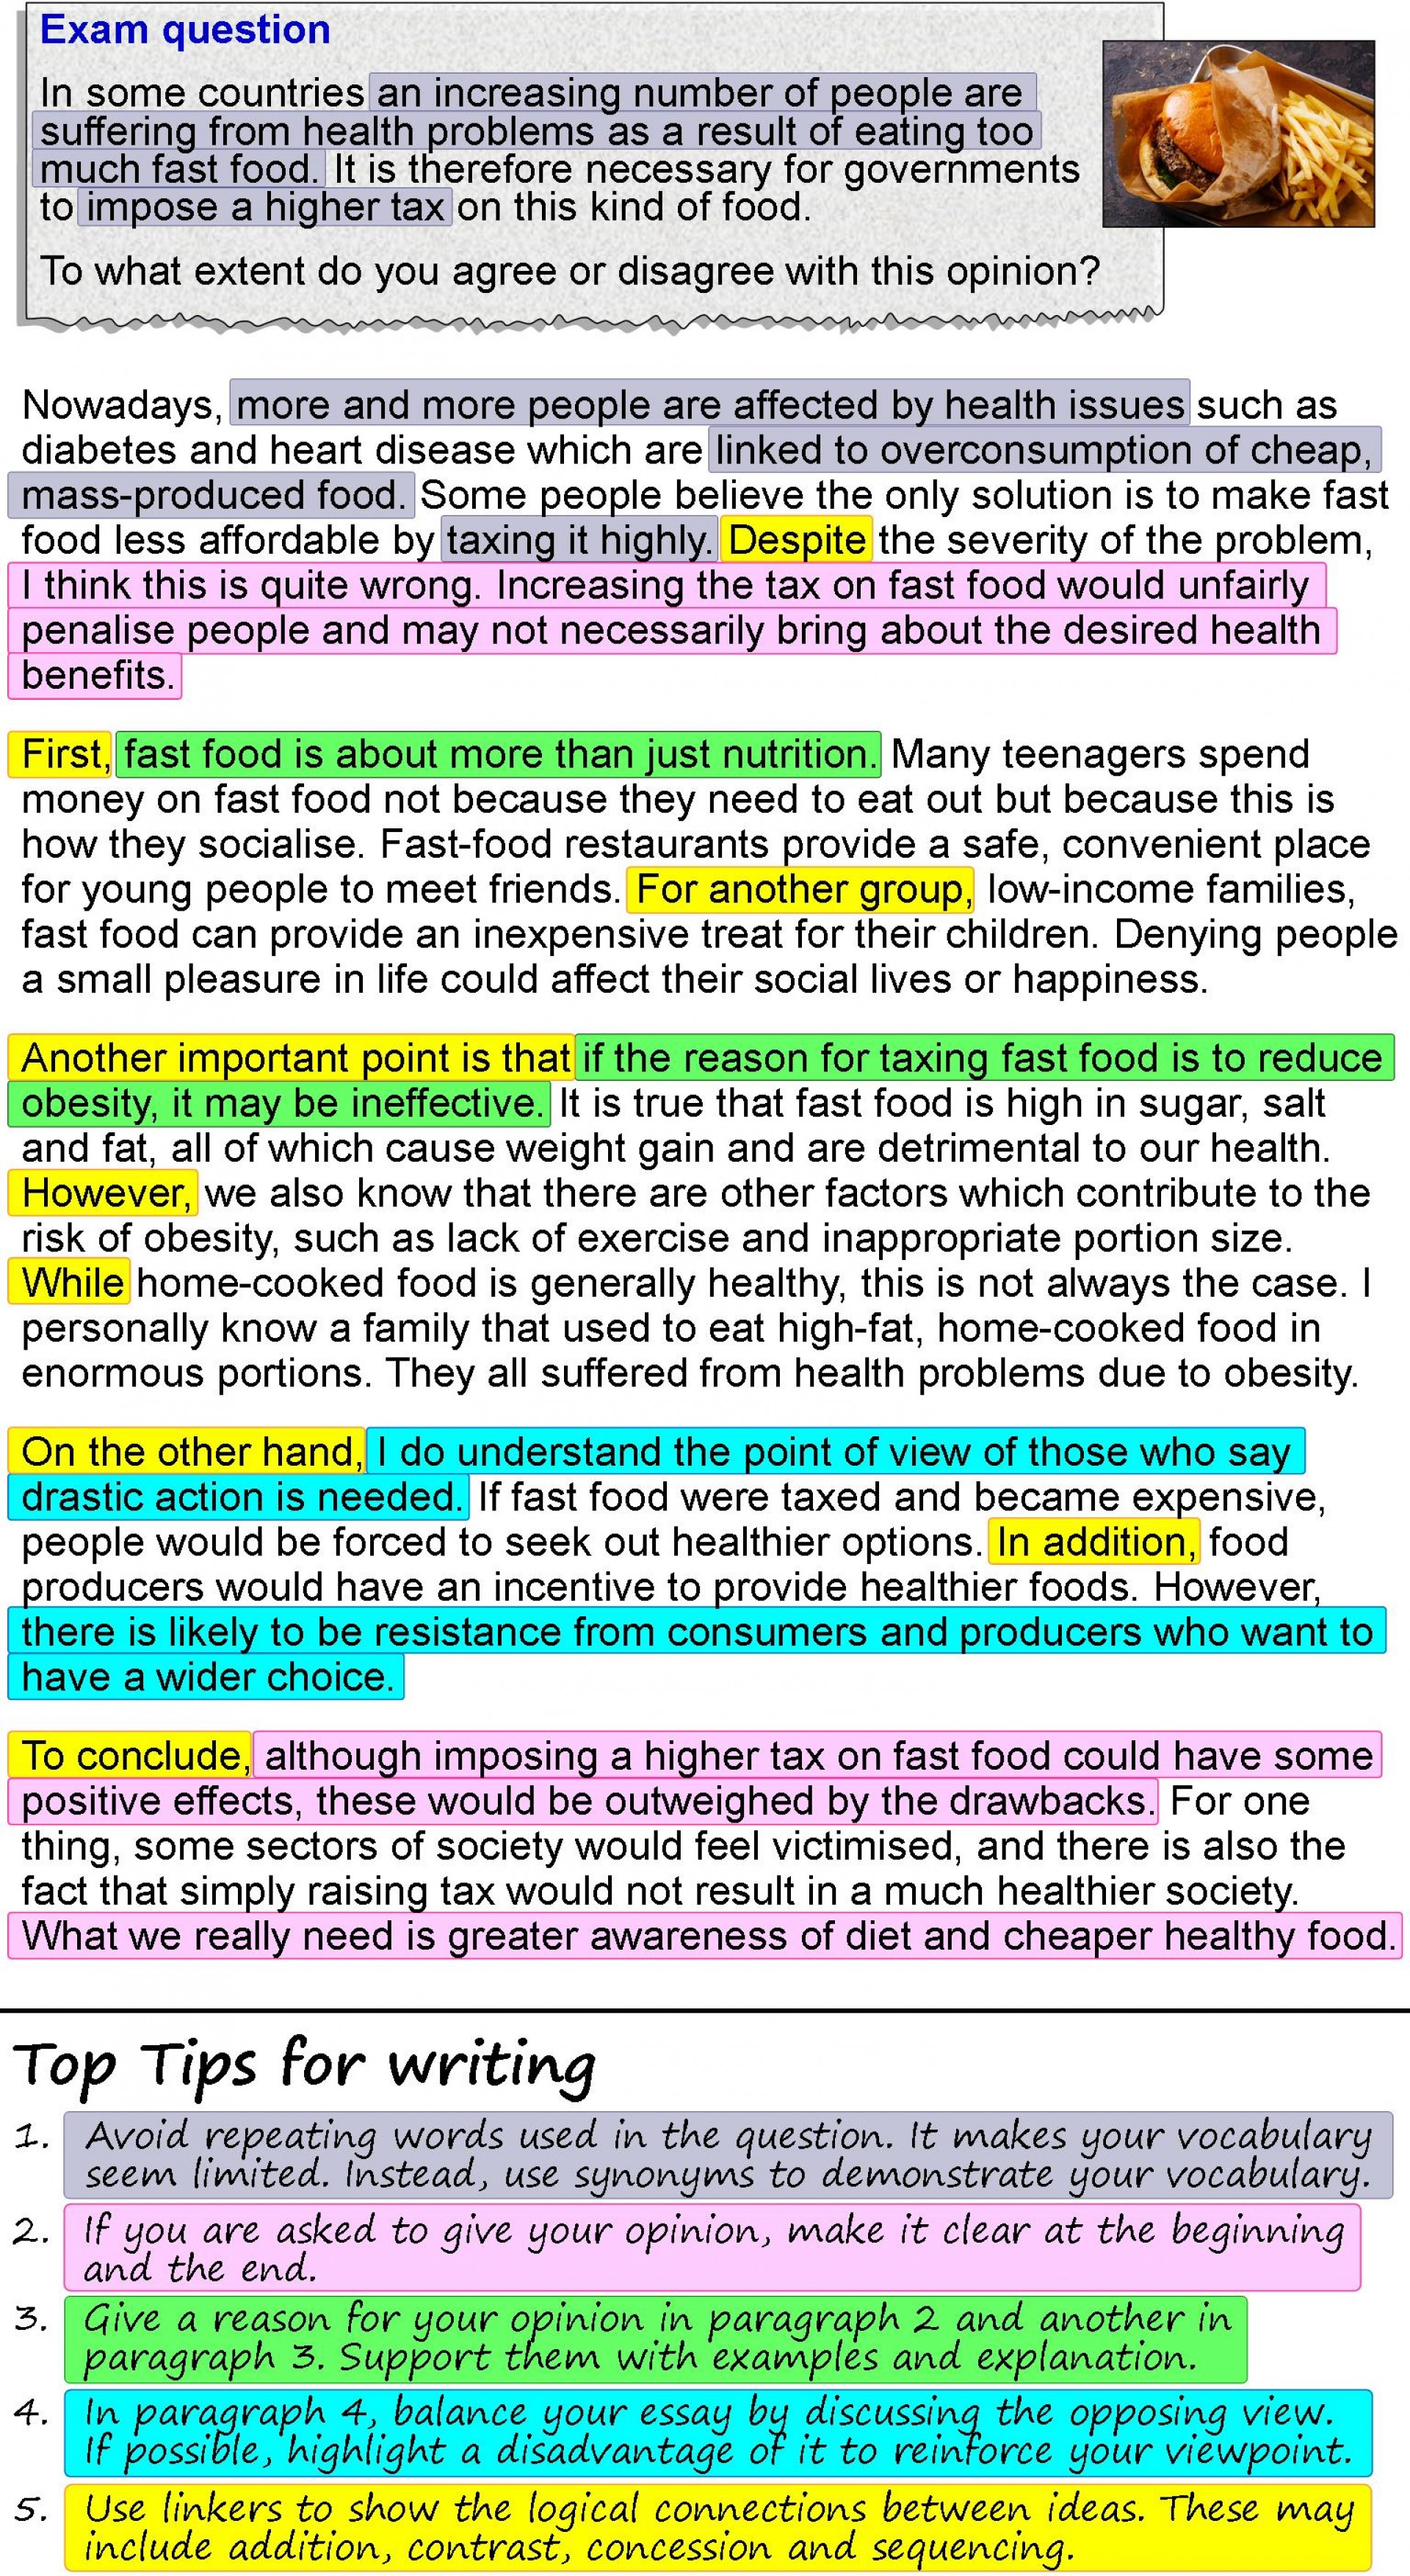 001 Food Essay Example An Opinion About Fast 4 Best Waste Conclusion Healthy Topics In Hindi 1920